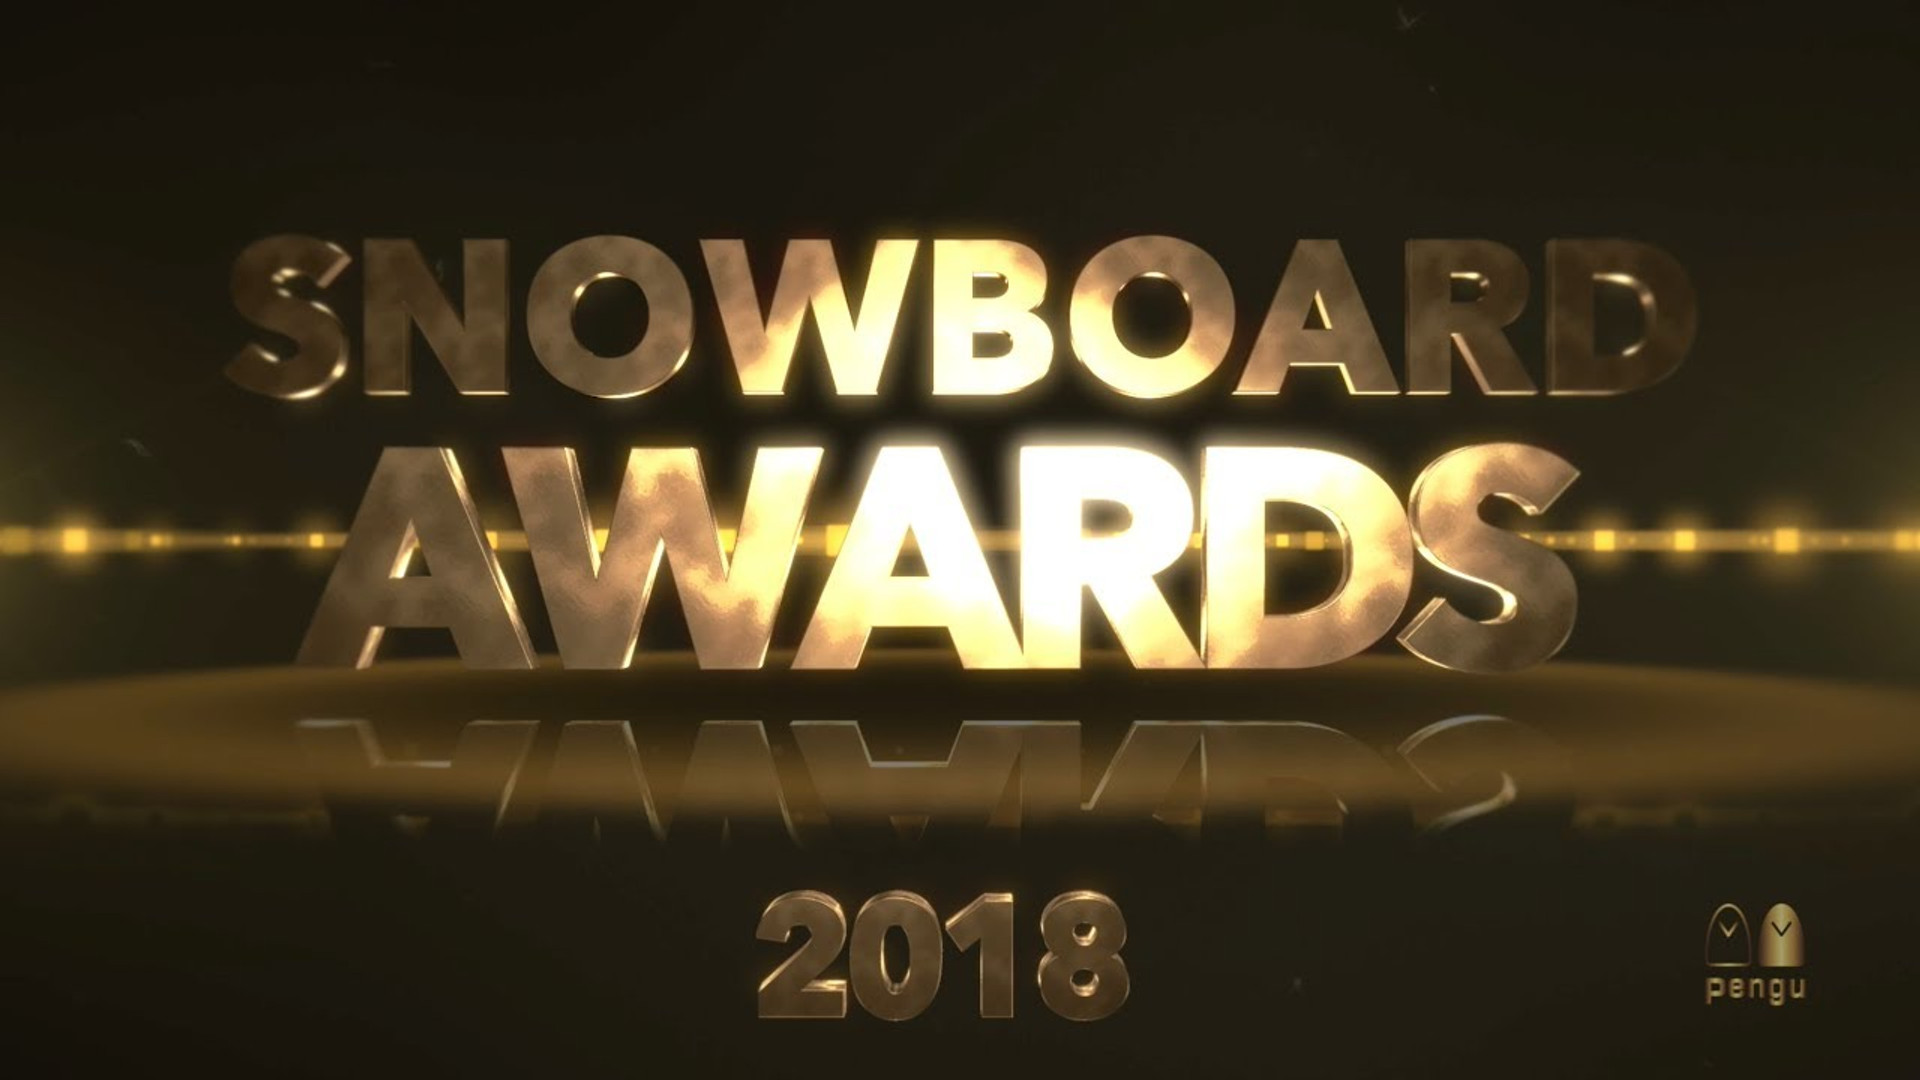 Snowboard Awards 2018